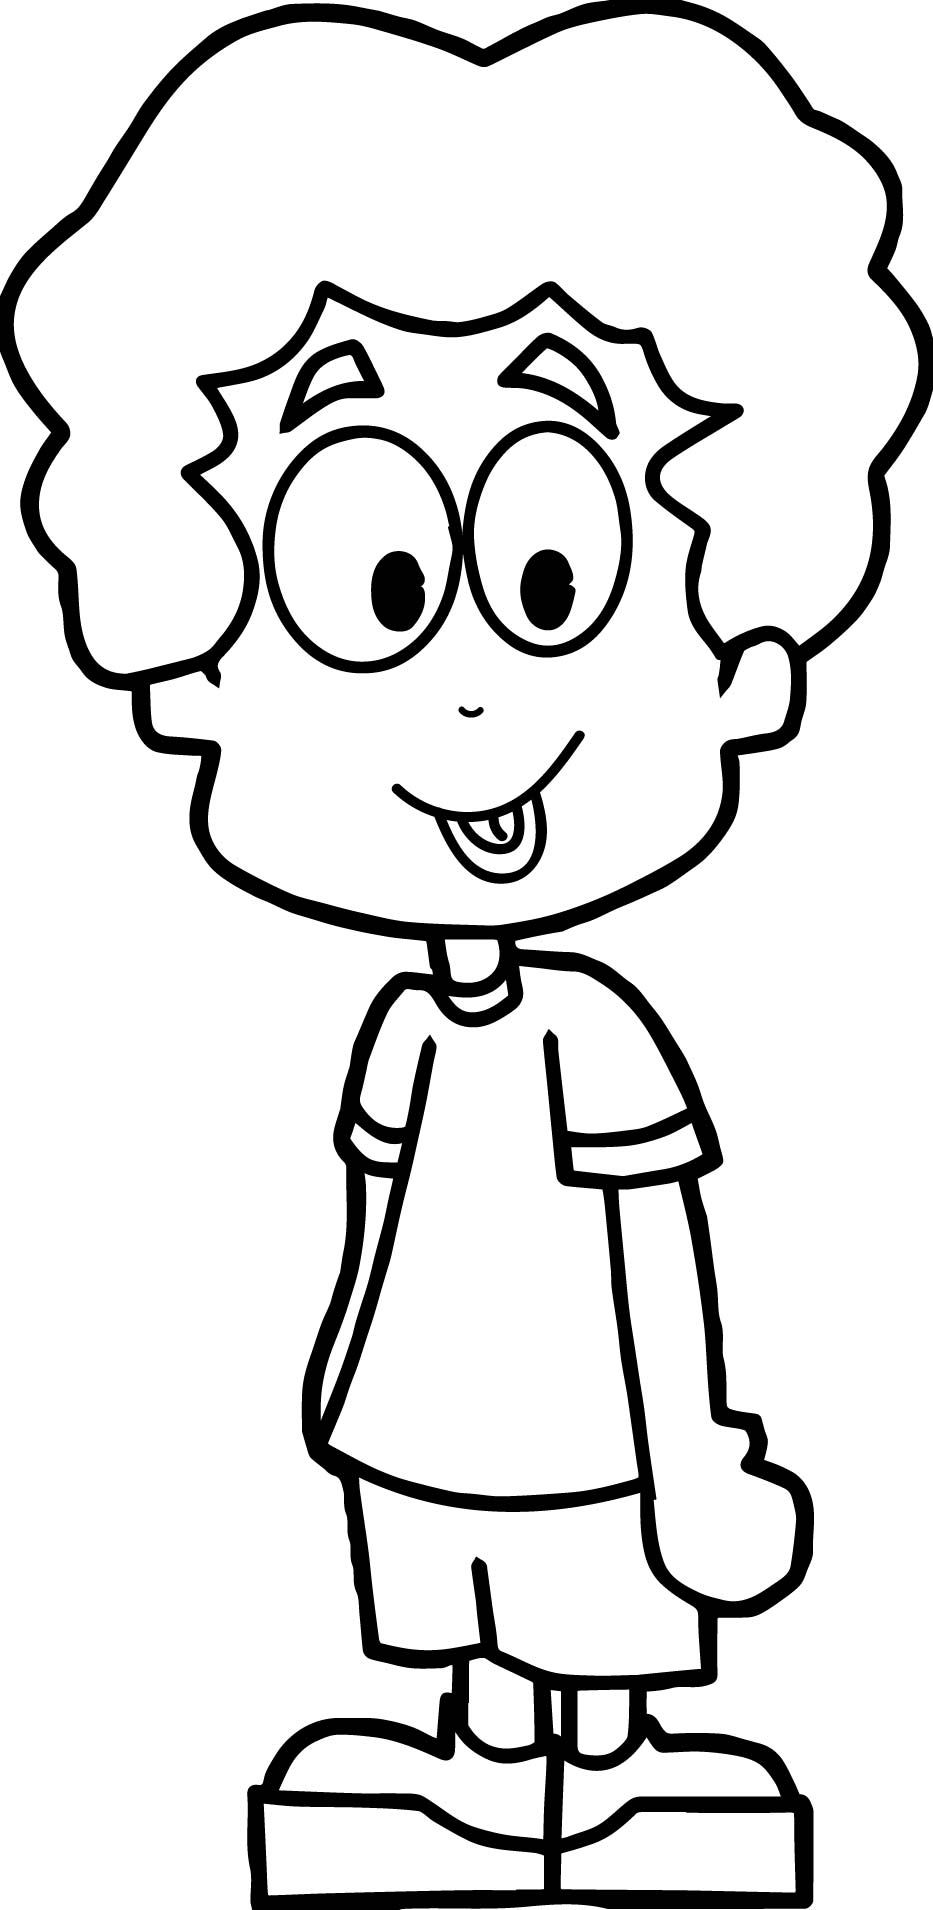 933x1910 Free Little Boy Coloring Pages Good Free Little Boy Coloring Pages